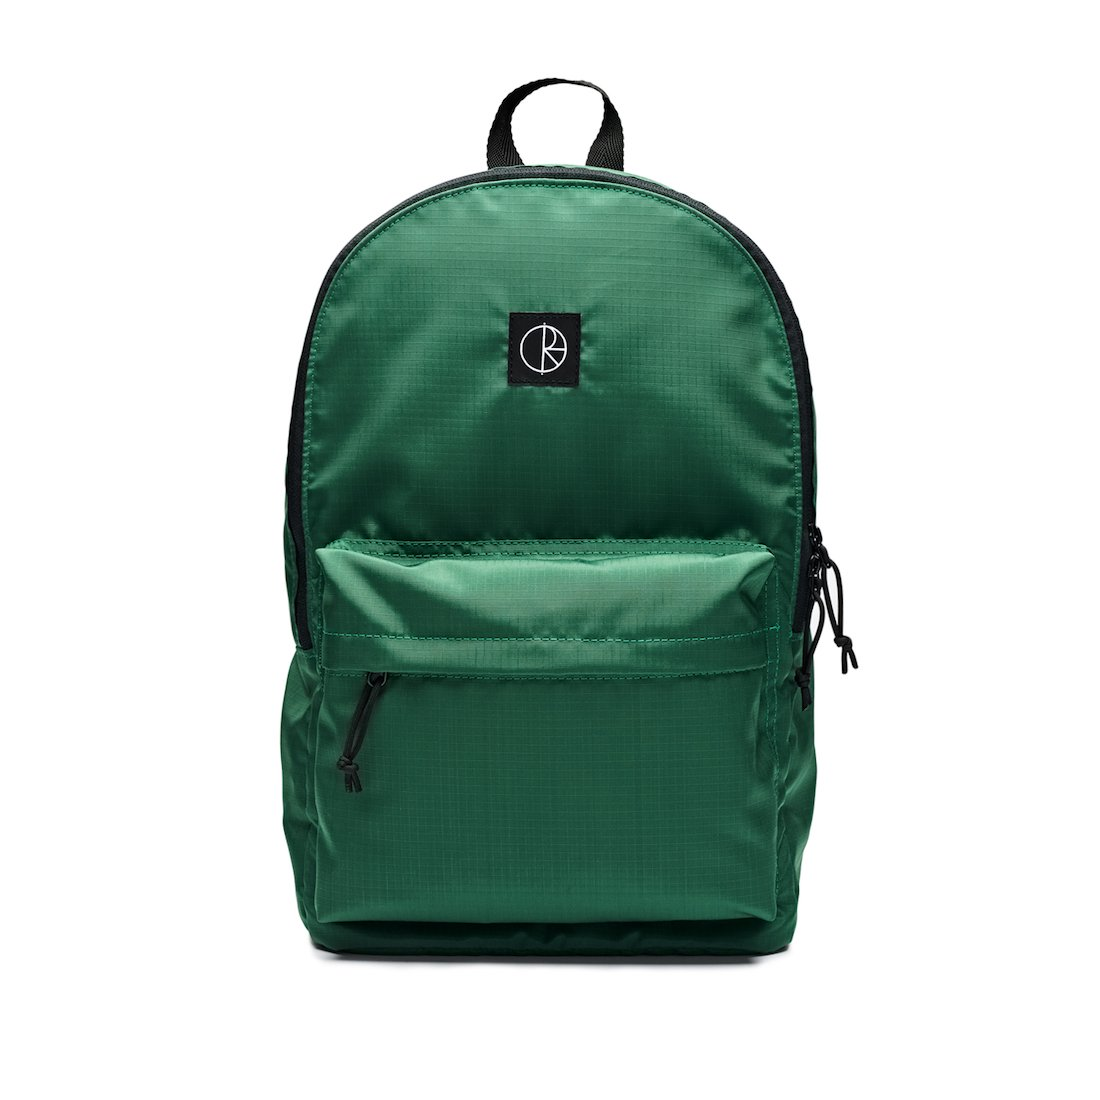 【POLAR SKATE CO.】Ripstop Backpack - Green